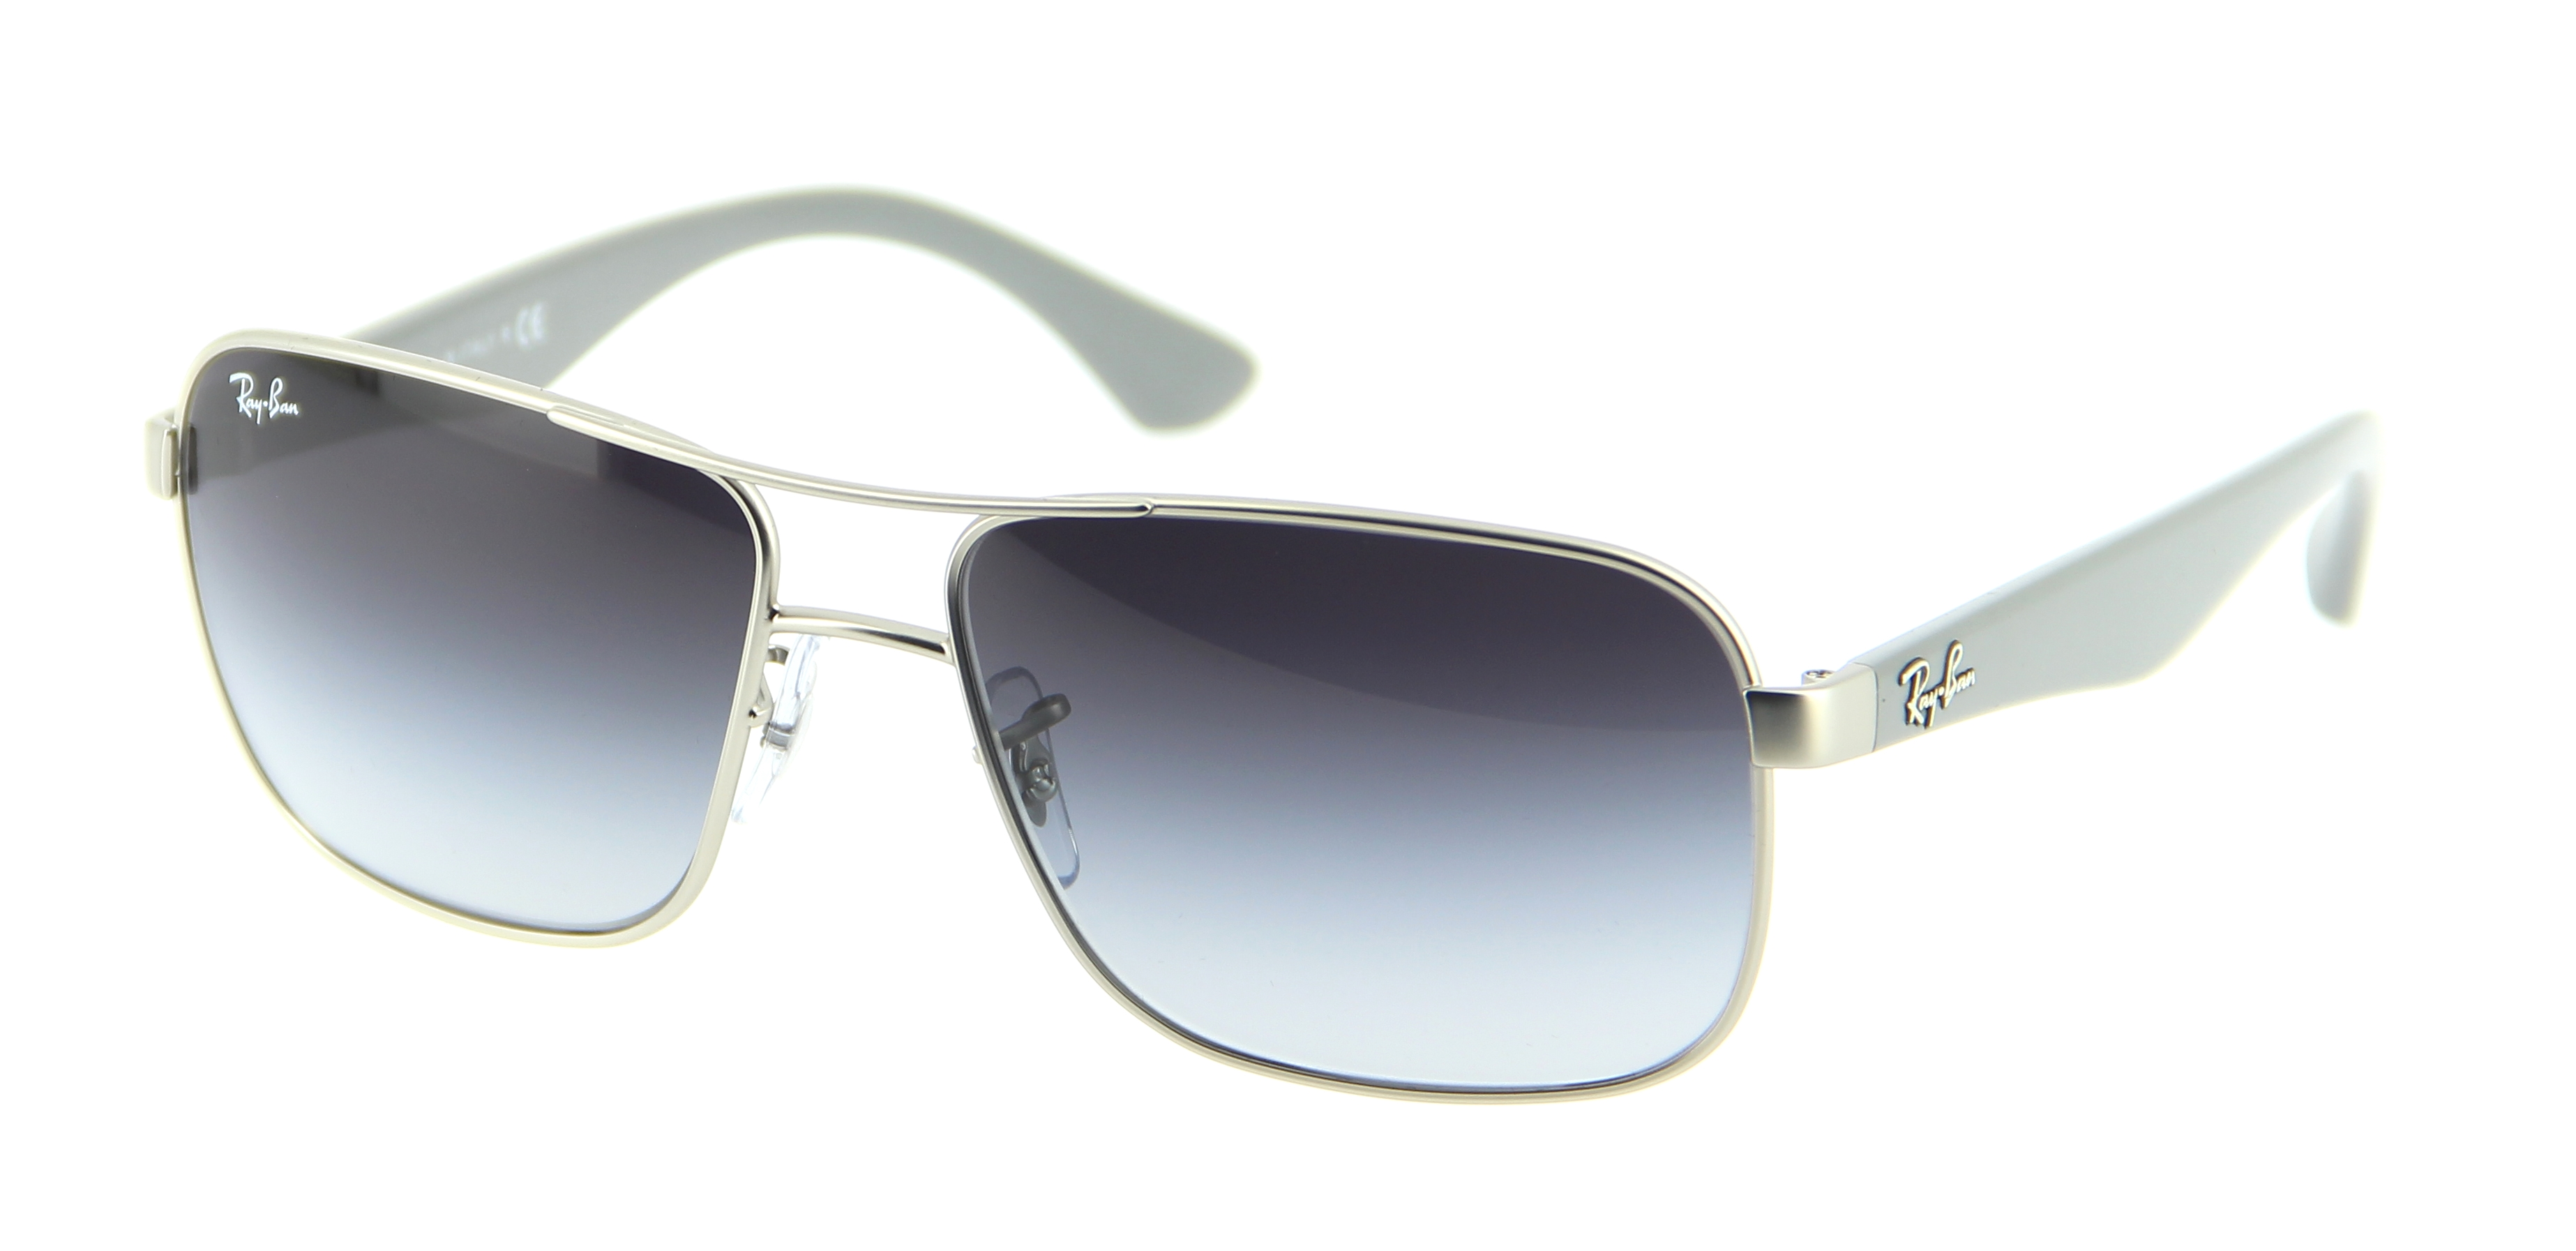 d8b7a8ac9a Sunglasses Ray Ban Owned Luxottica « Heritage Malta